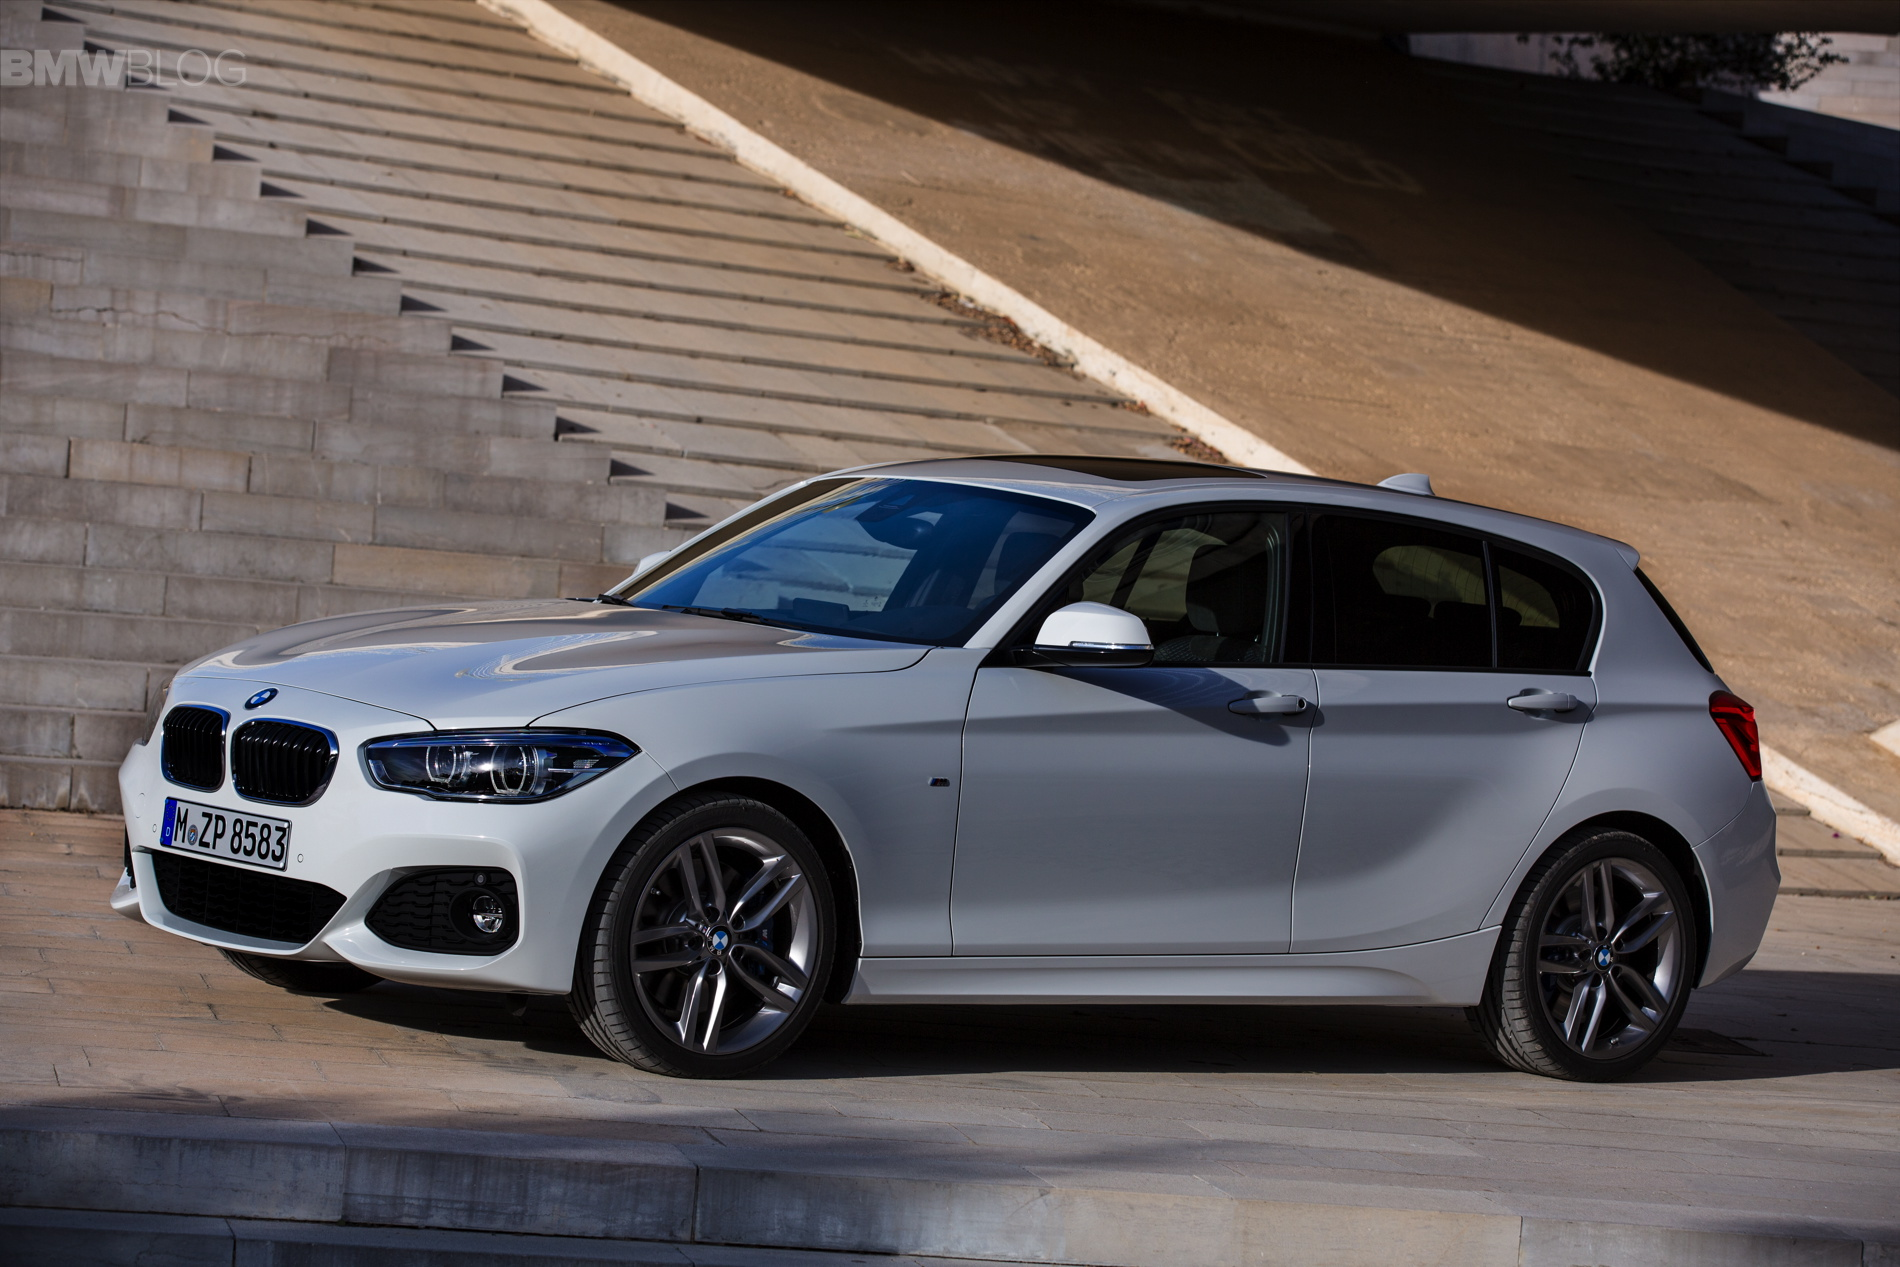 2015 Bmw 1 Series Facelift With M Sport Package